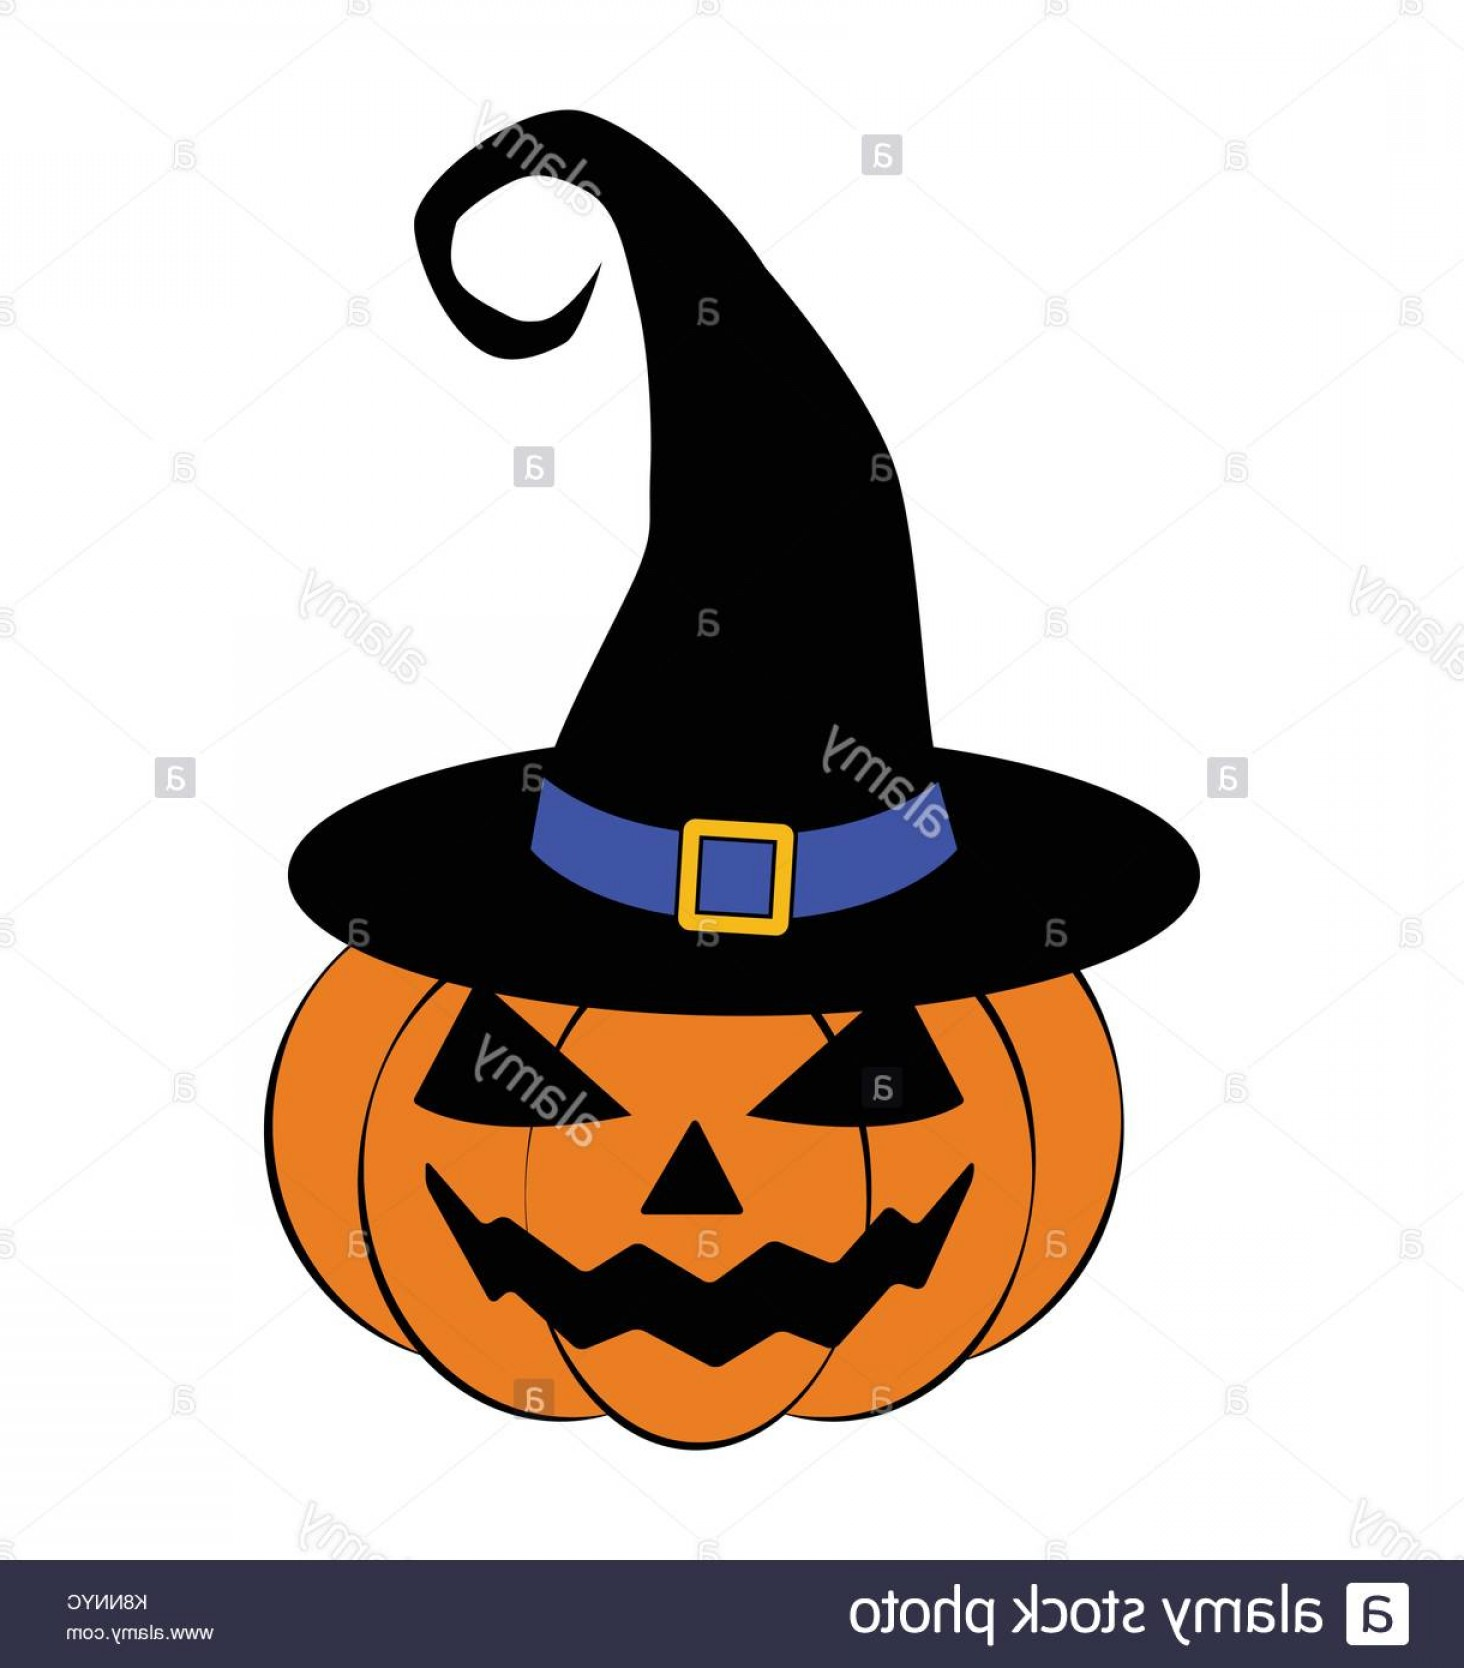 Halloween Witch Hat Vector: Stock Image Halloween Pumpkin In Witches Hat Vector Illustration Jack O Lantern